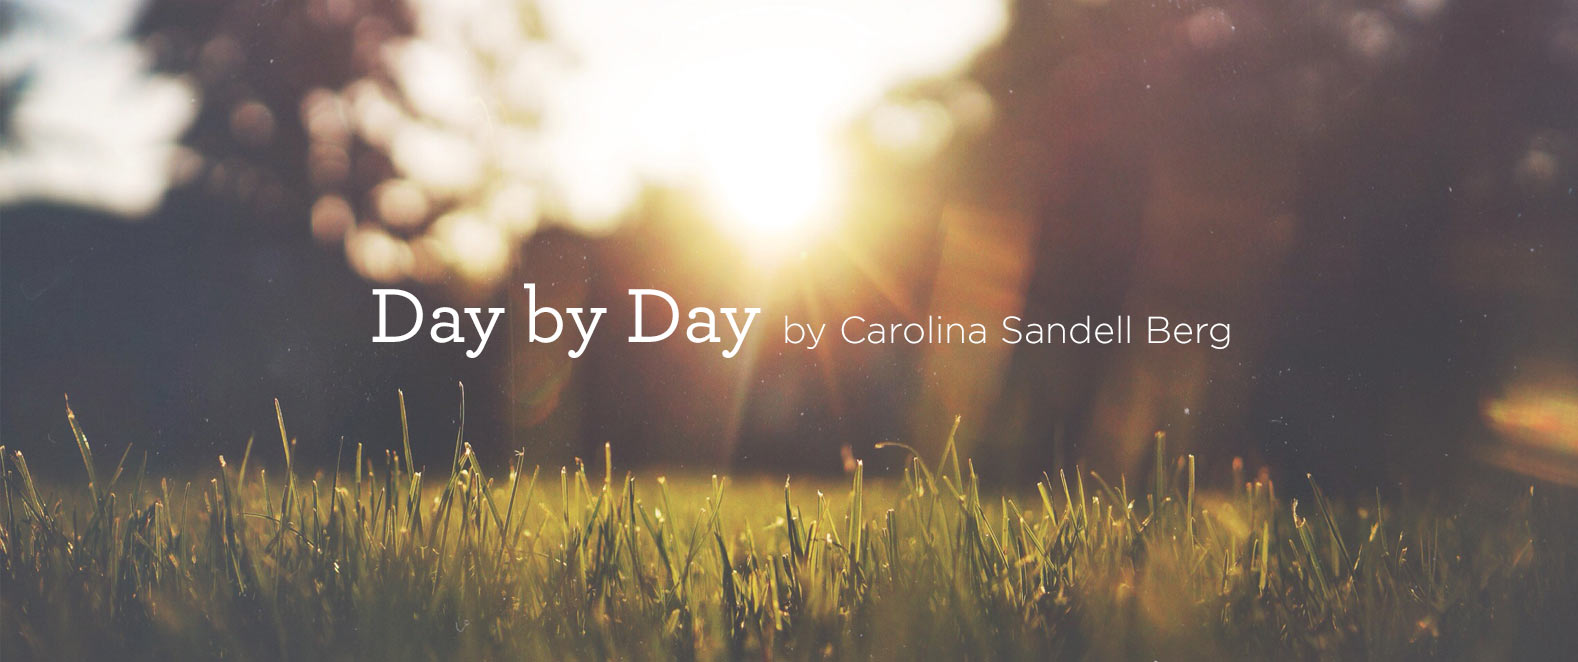 thumbnail image for Hymn: Day by Day